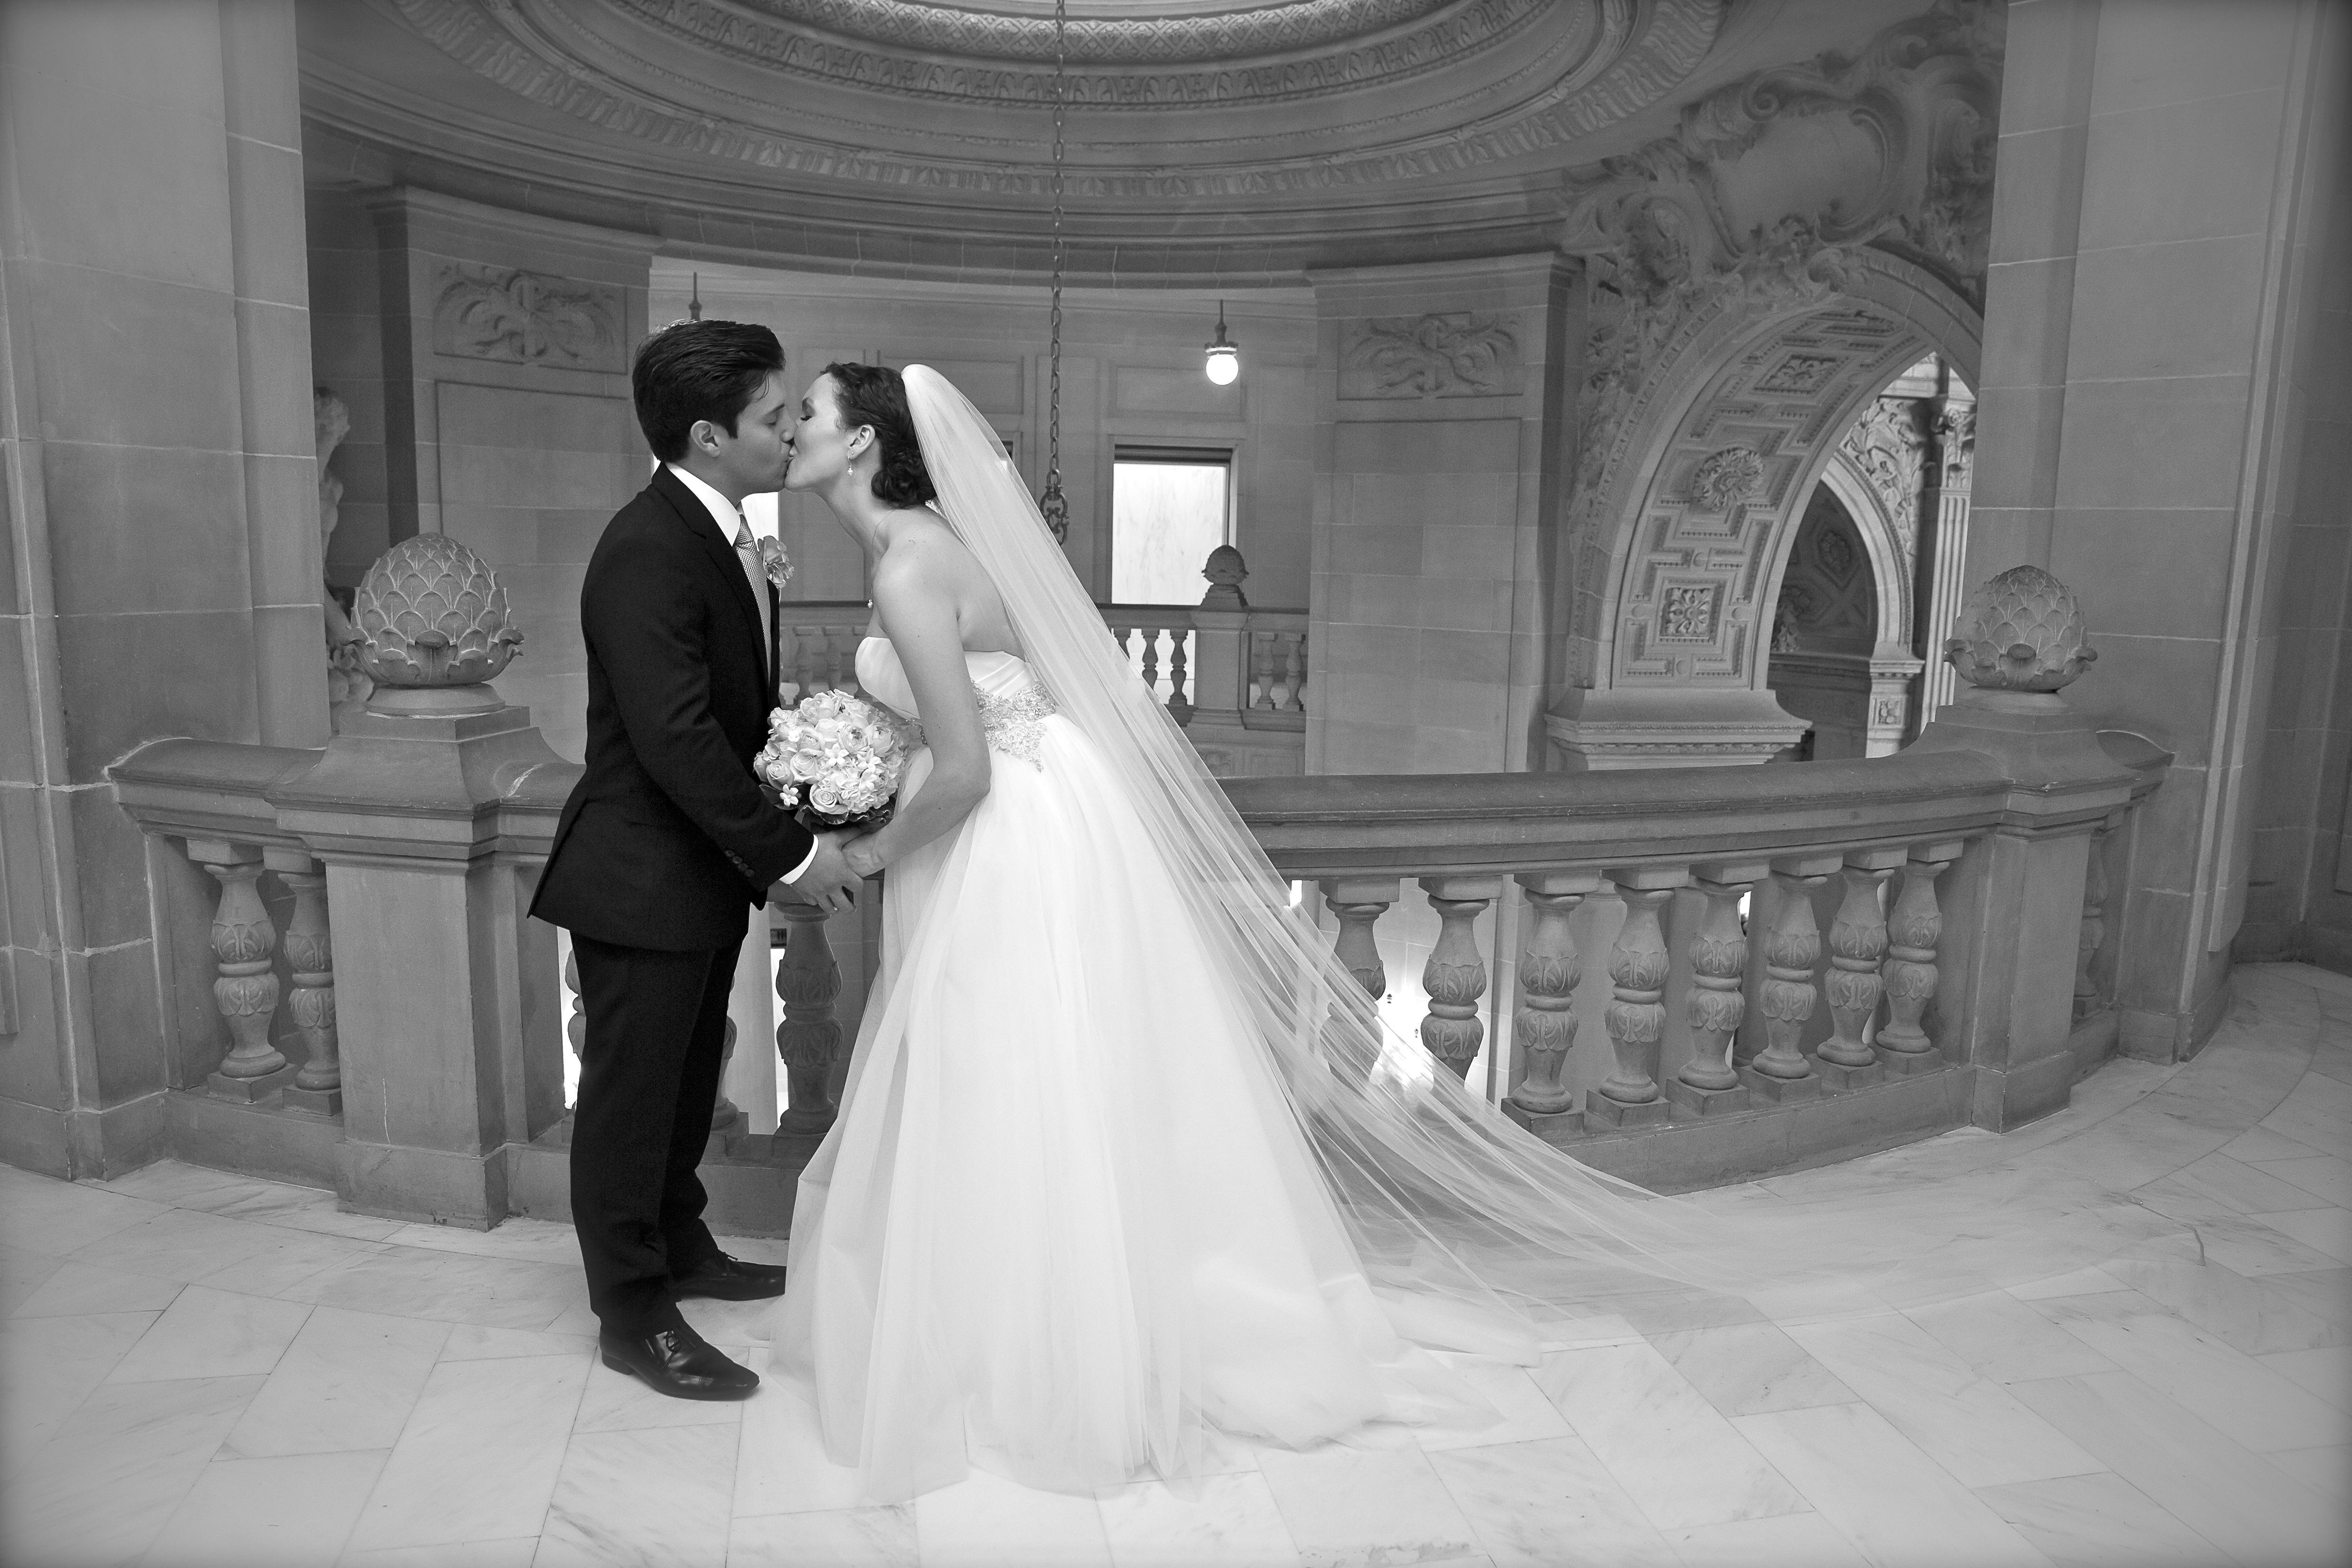 Show Me Your Veil To Match A HUGE Tulle Ball Gown